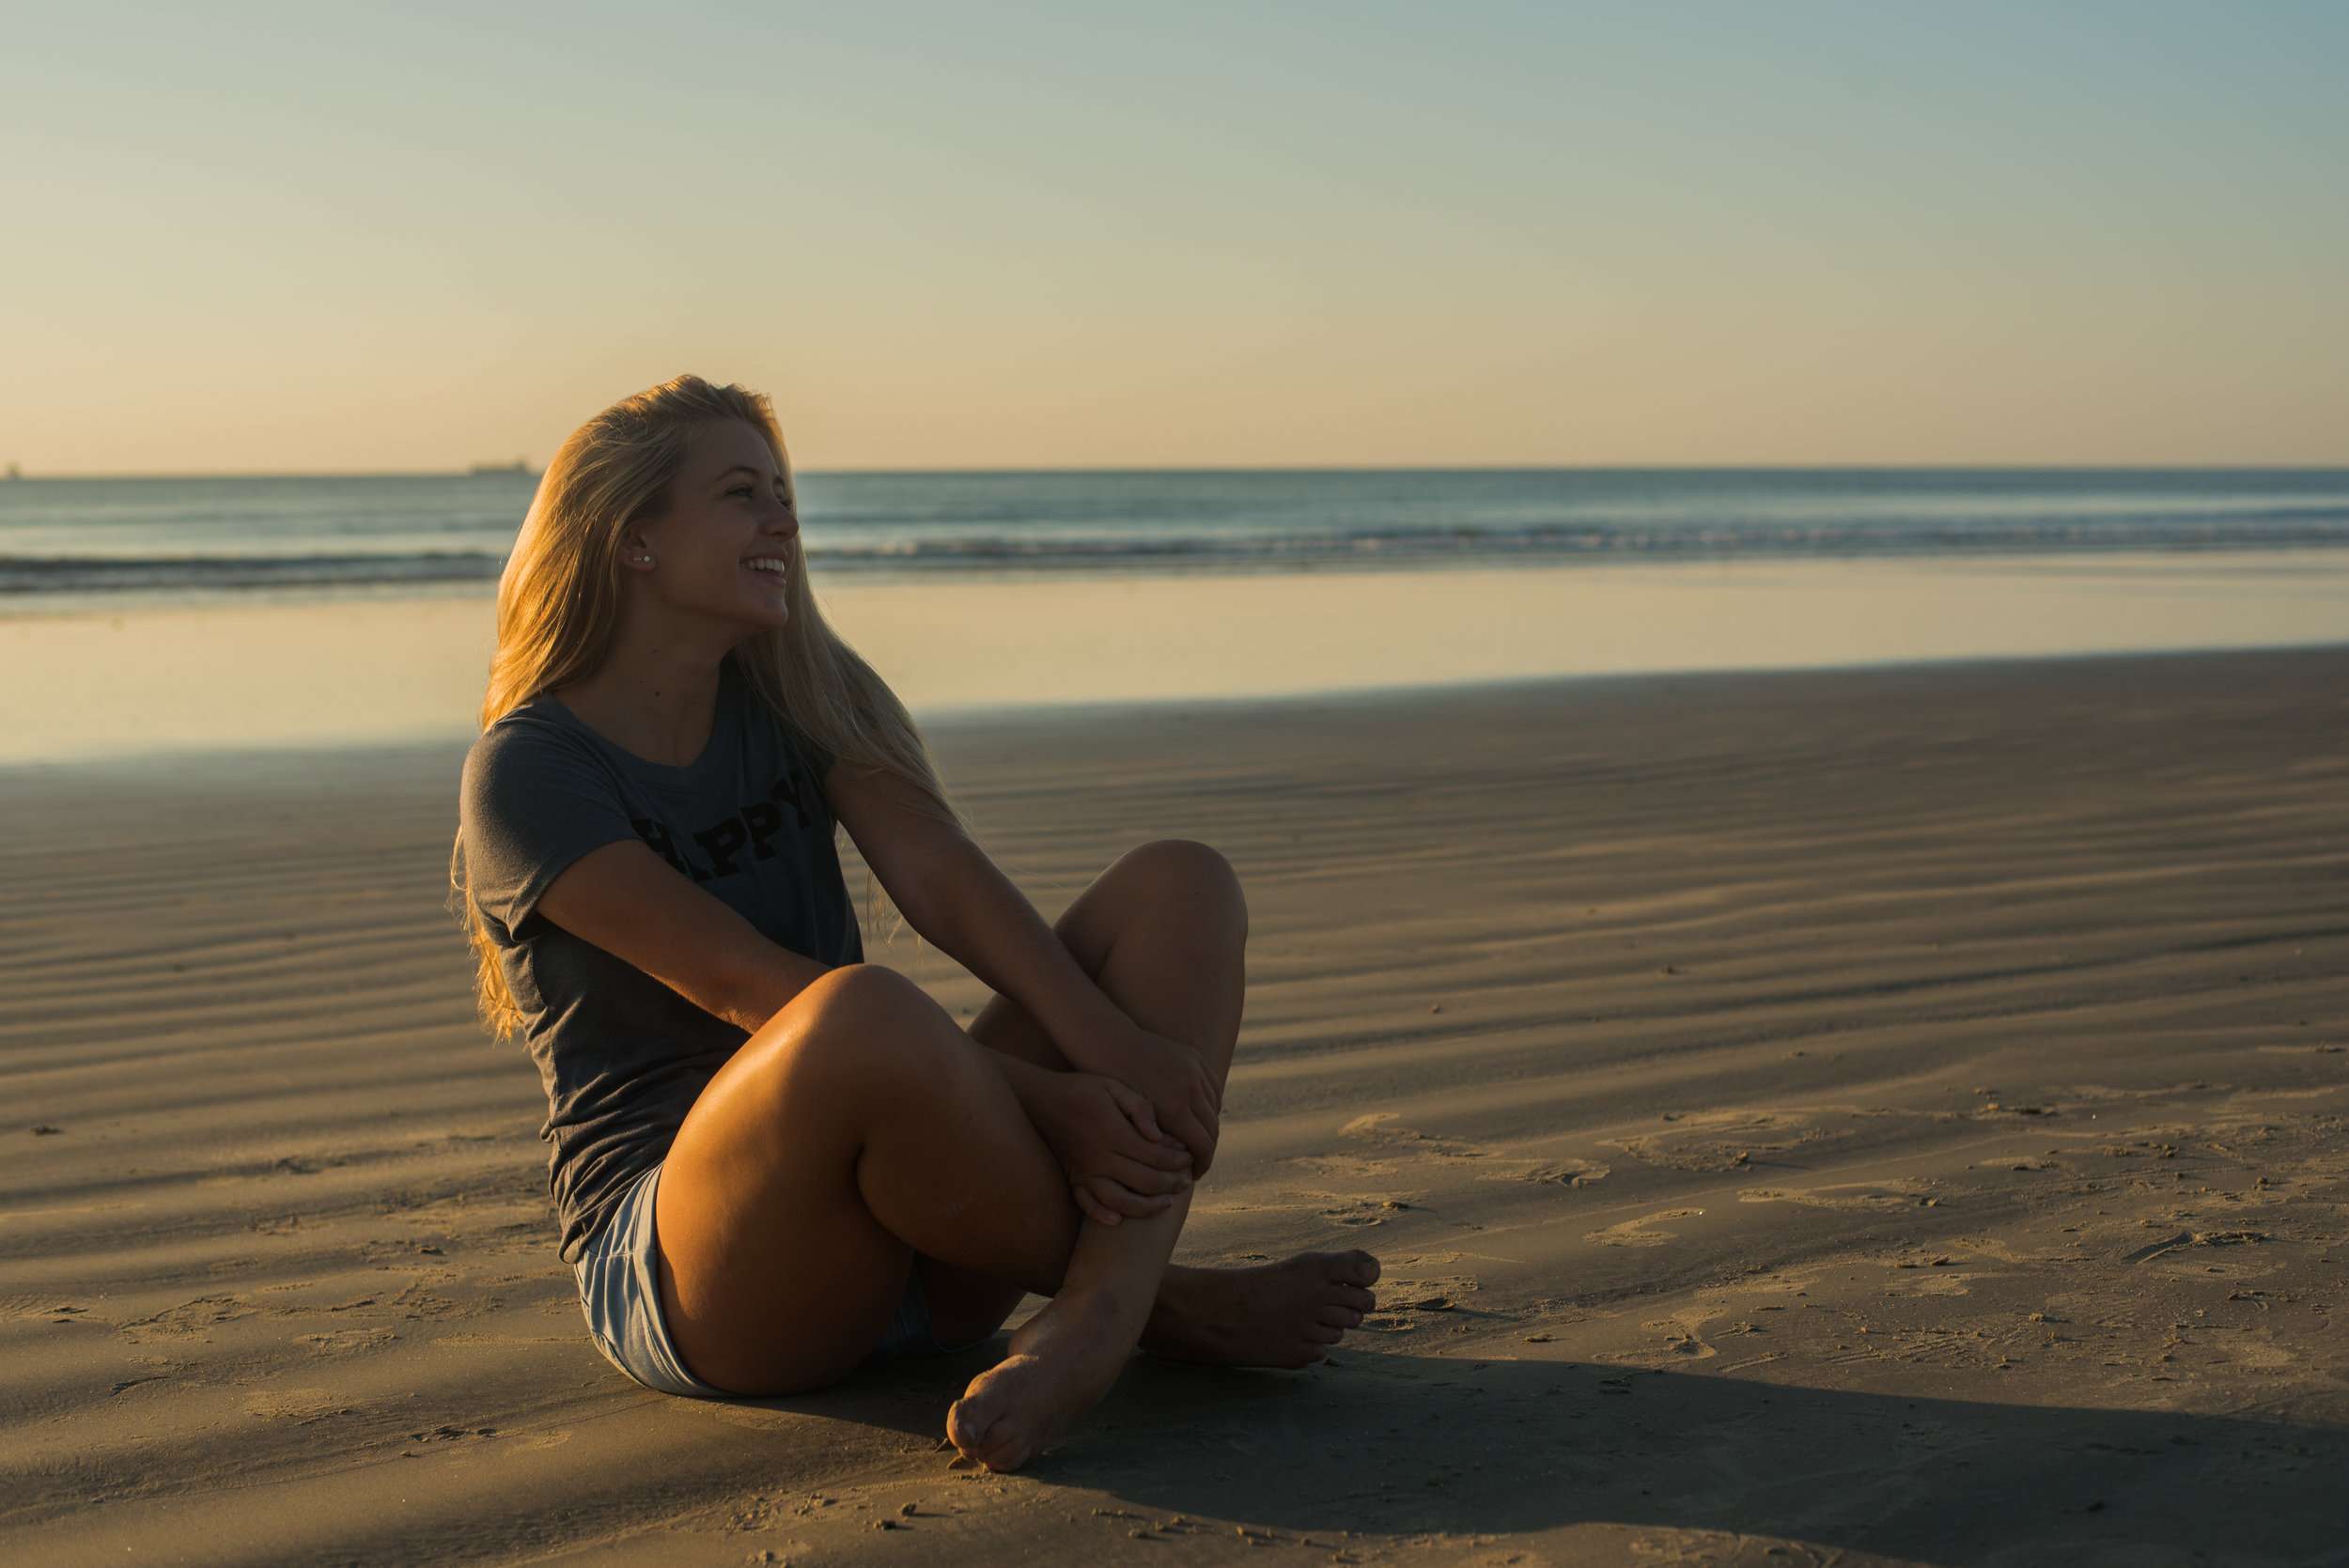 maddie-cocoa-beach-senior-photo-1-36.jpg